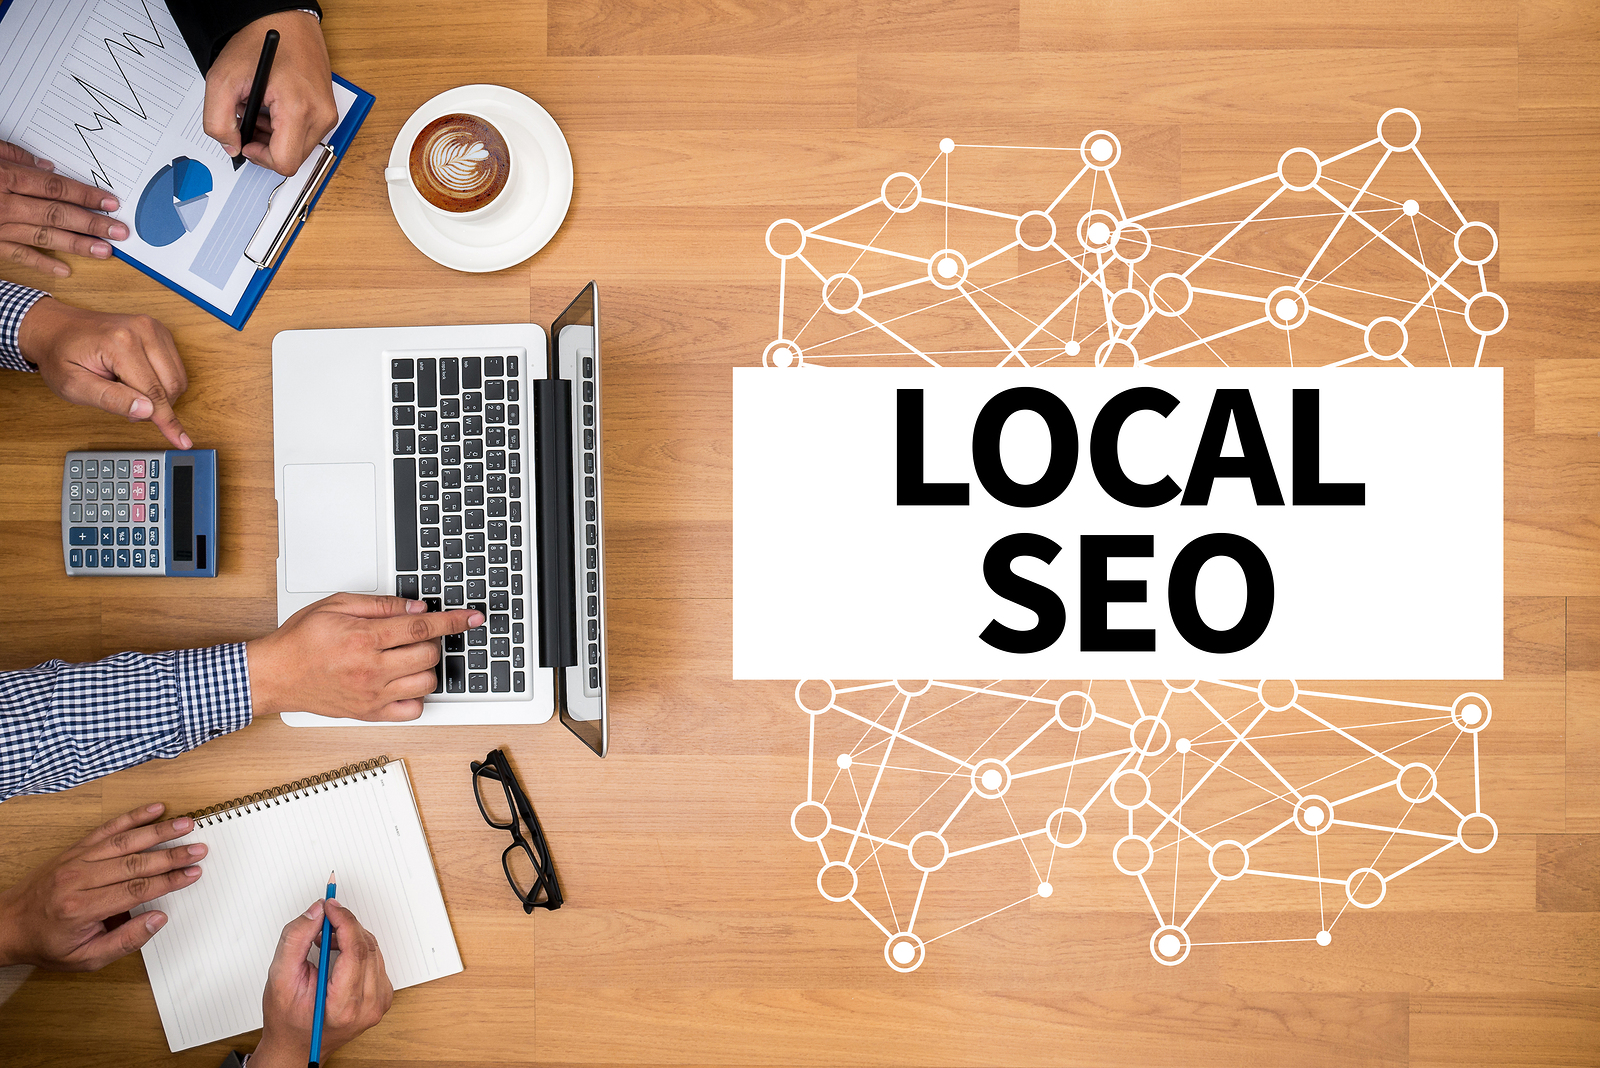 How Local SEO Benefits Local Business?